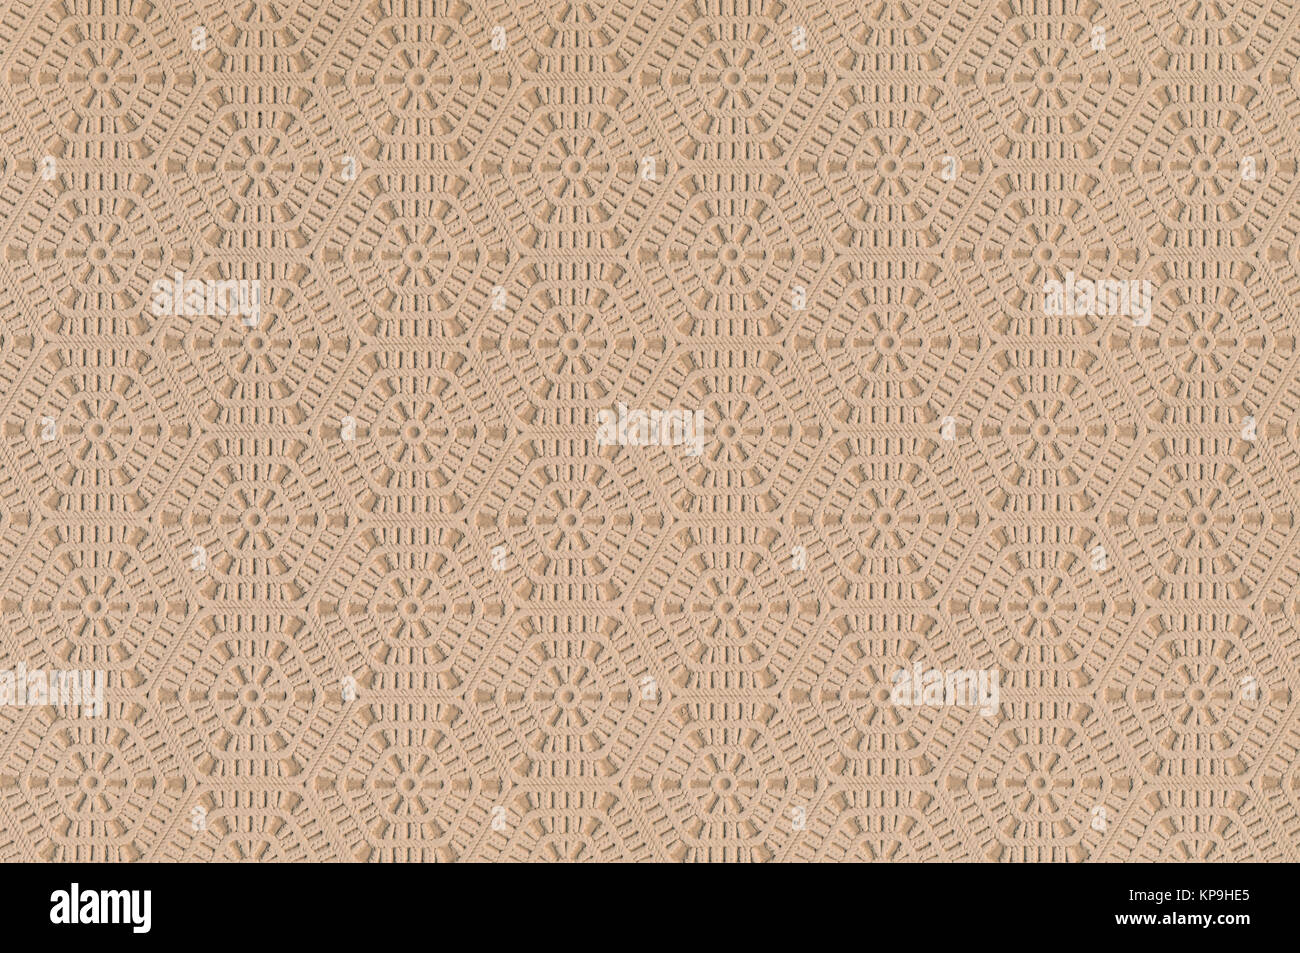 beige leather texture with decorative pattern as background - Stock Image